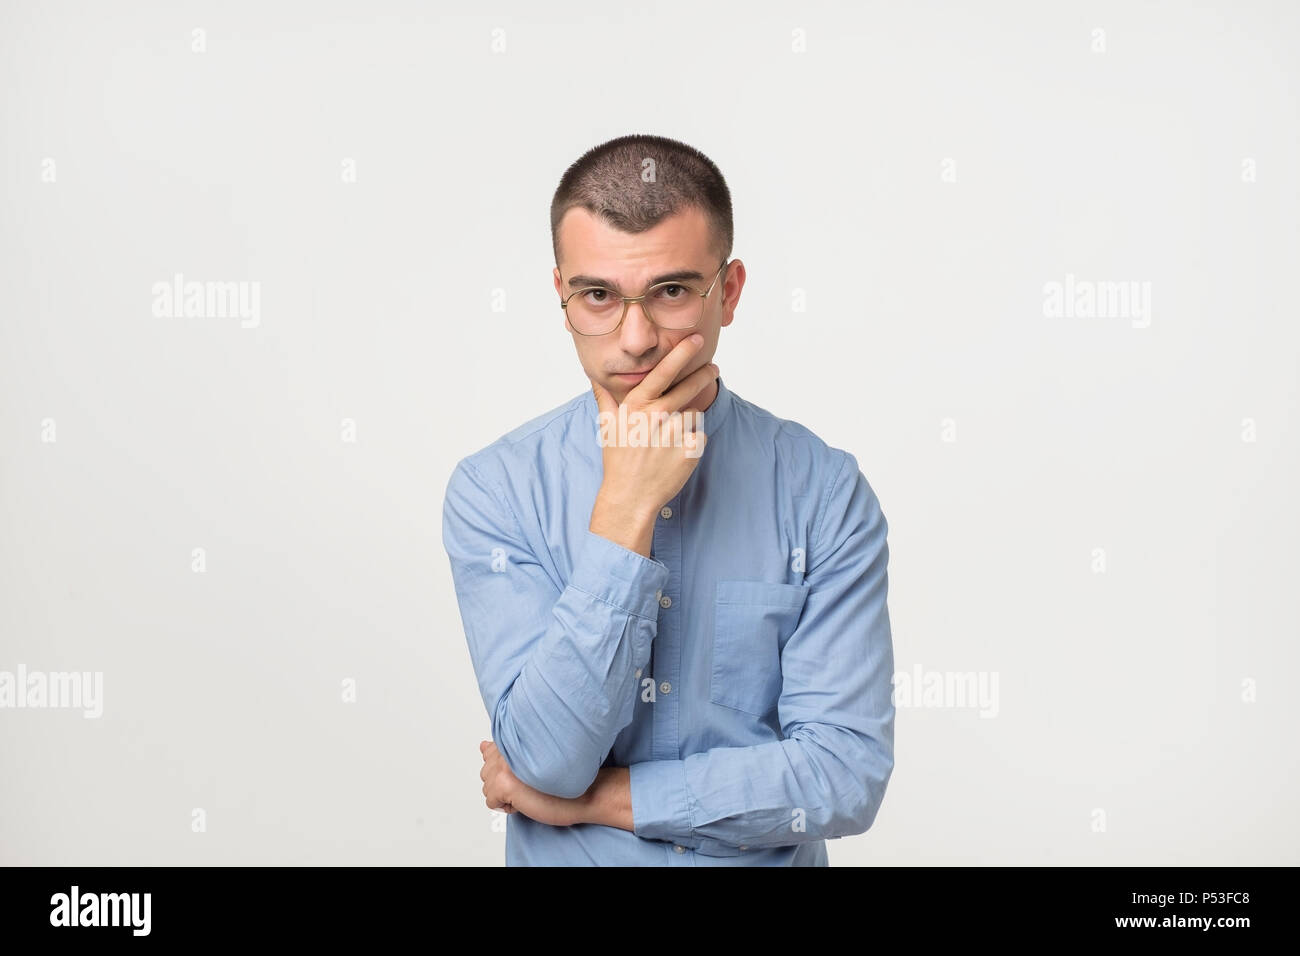 Young man in blue shirt standing disorientated bewildered isolated on gray wall background. Decision making concept. Human facial expression emotions - Stock Image